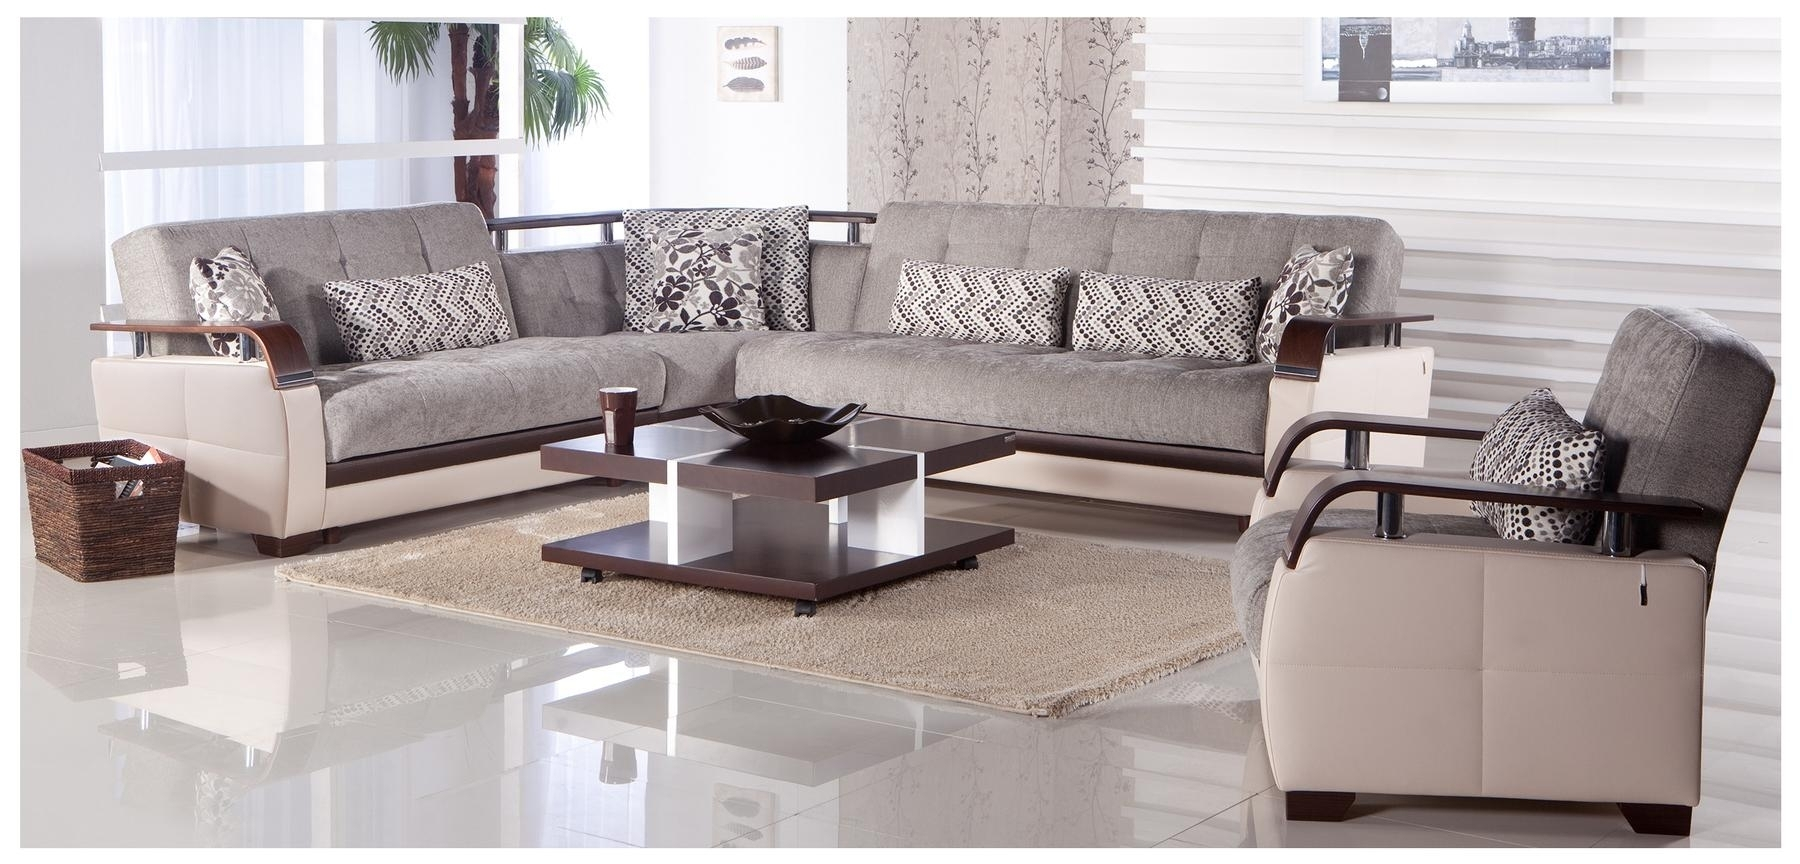 20+ Choices Of Houston Sectional Sofa | Sofa Ideas Throughout Houston Sectional Sofas (Gallery 6 of 10)